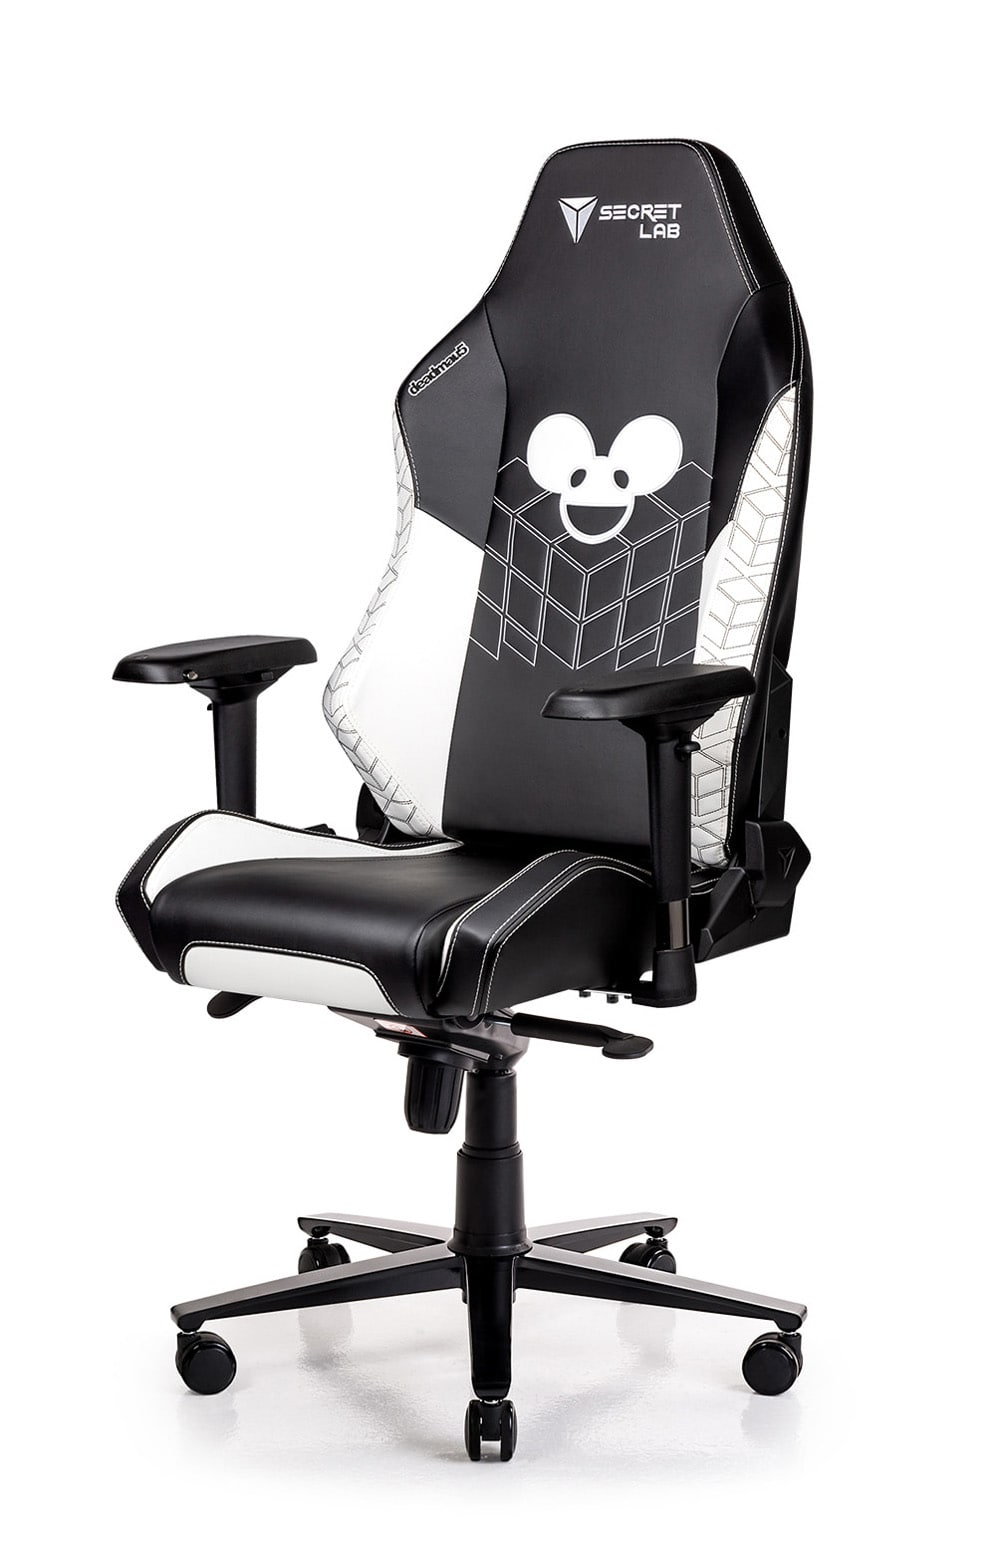 Secretlab OMEGA Series- deadmau5 Special EditionGaming Chair